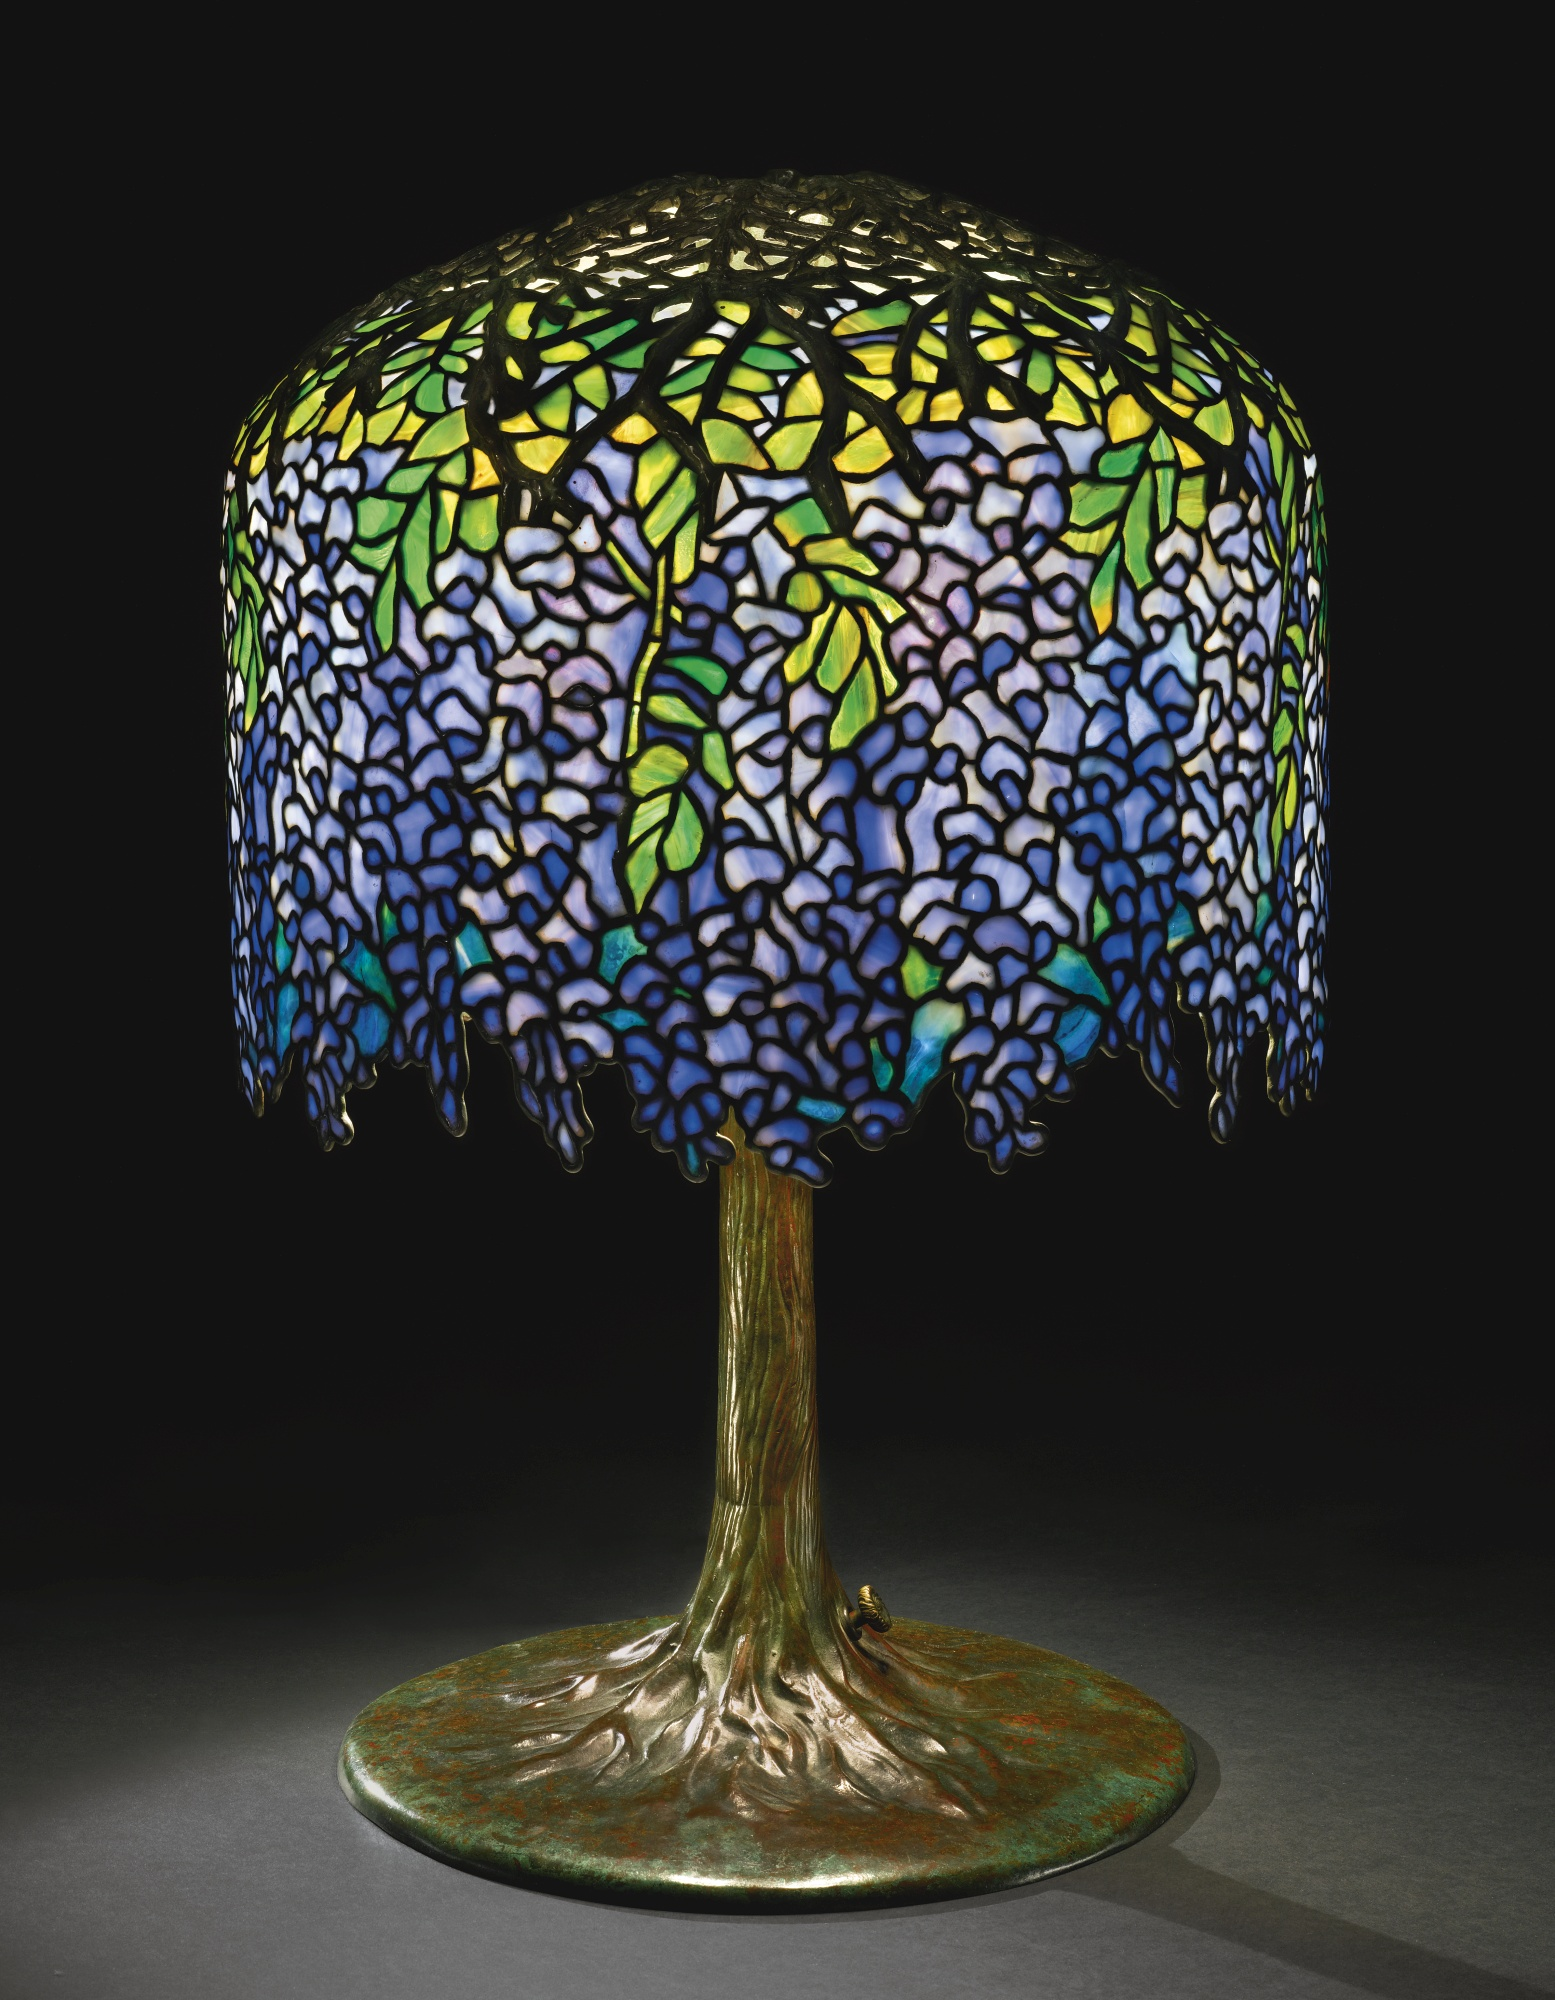 Tiffany Studios Wisteria table lamp, Sotheby's lot #330